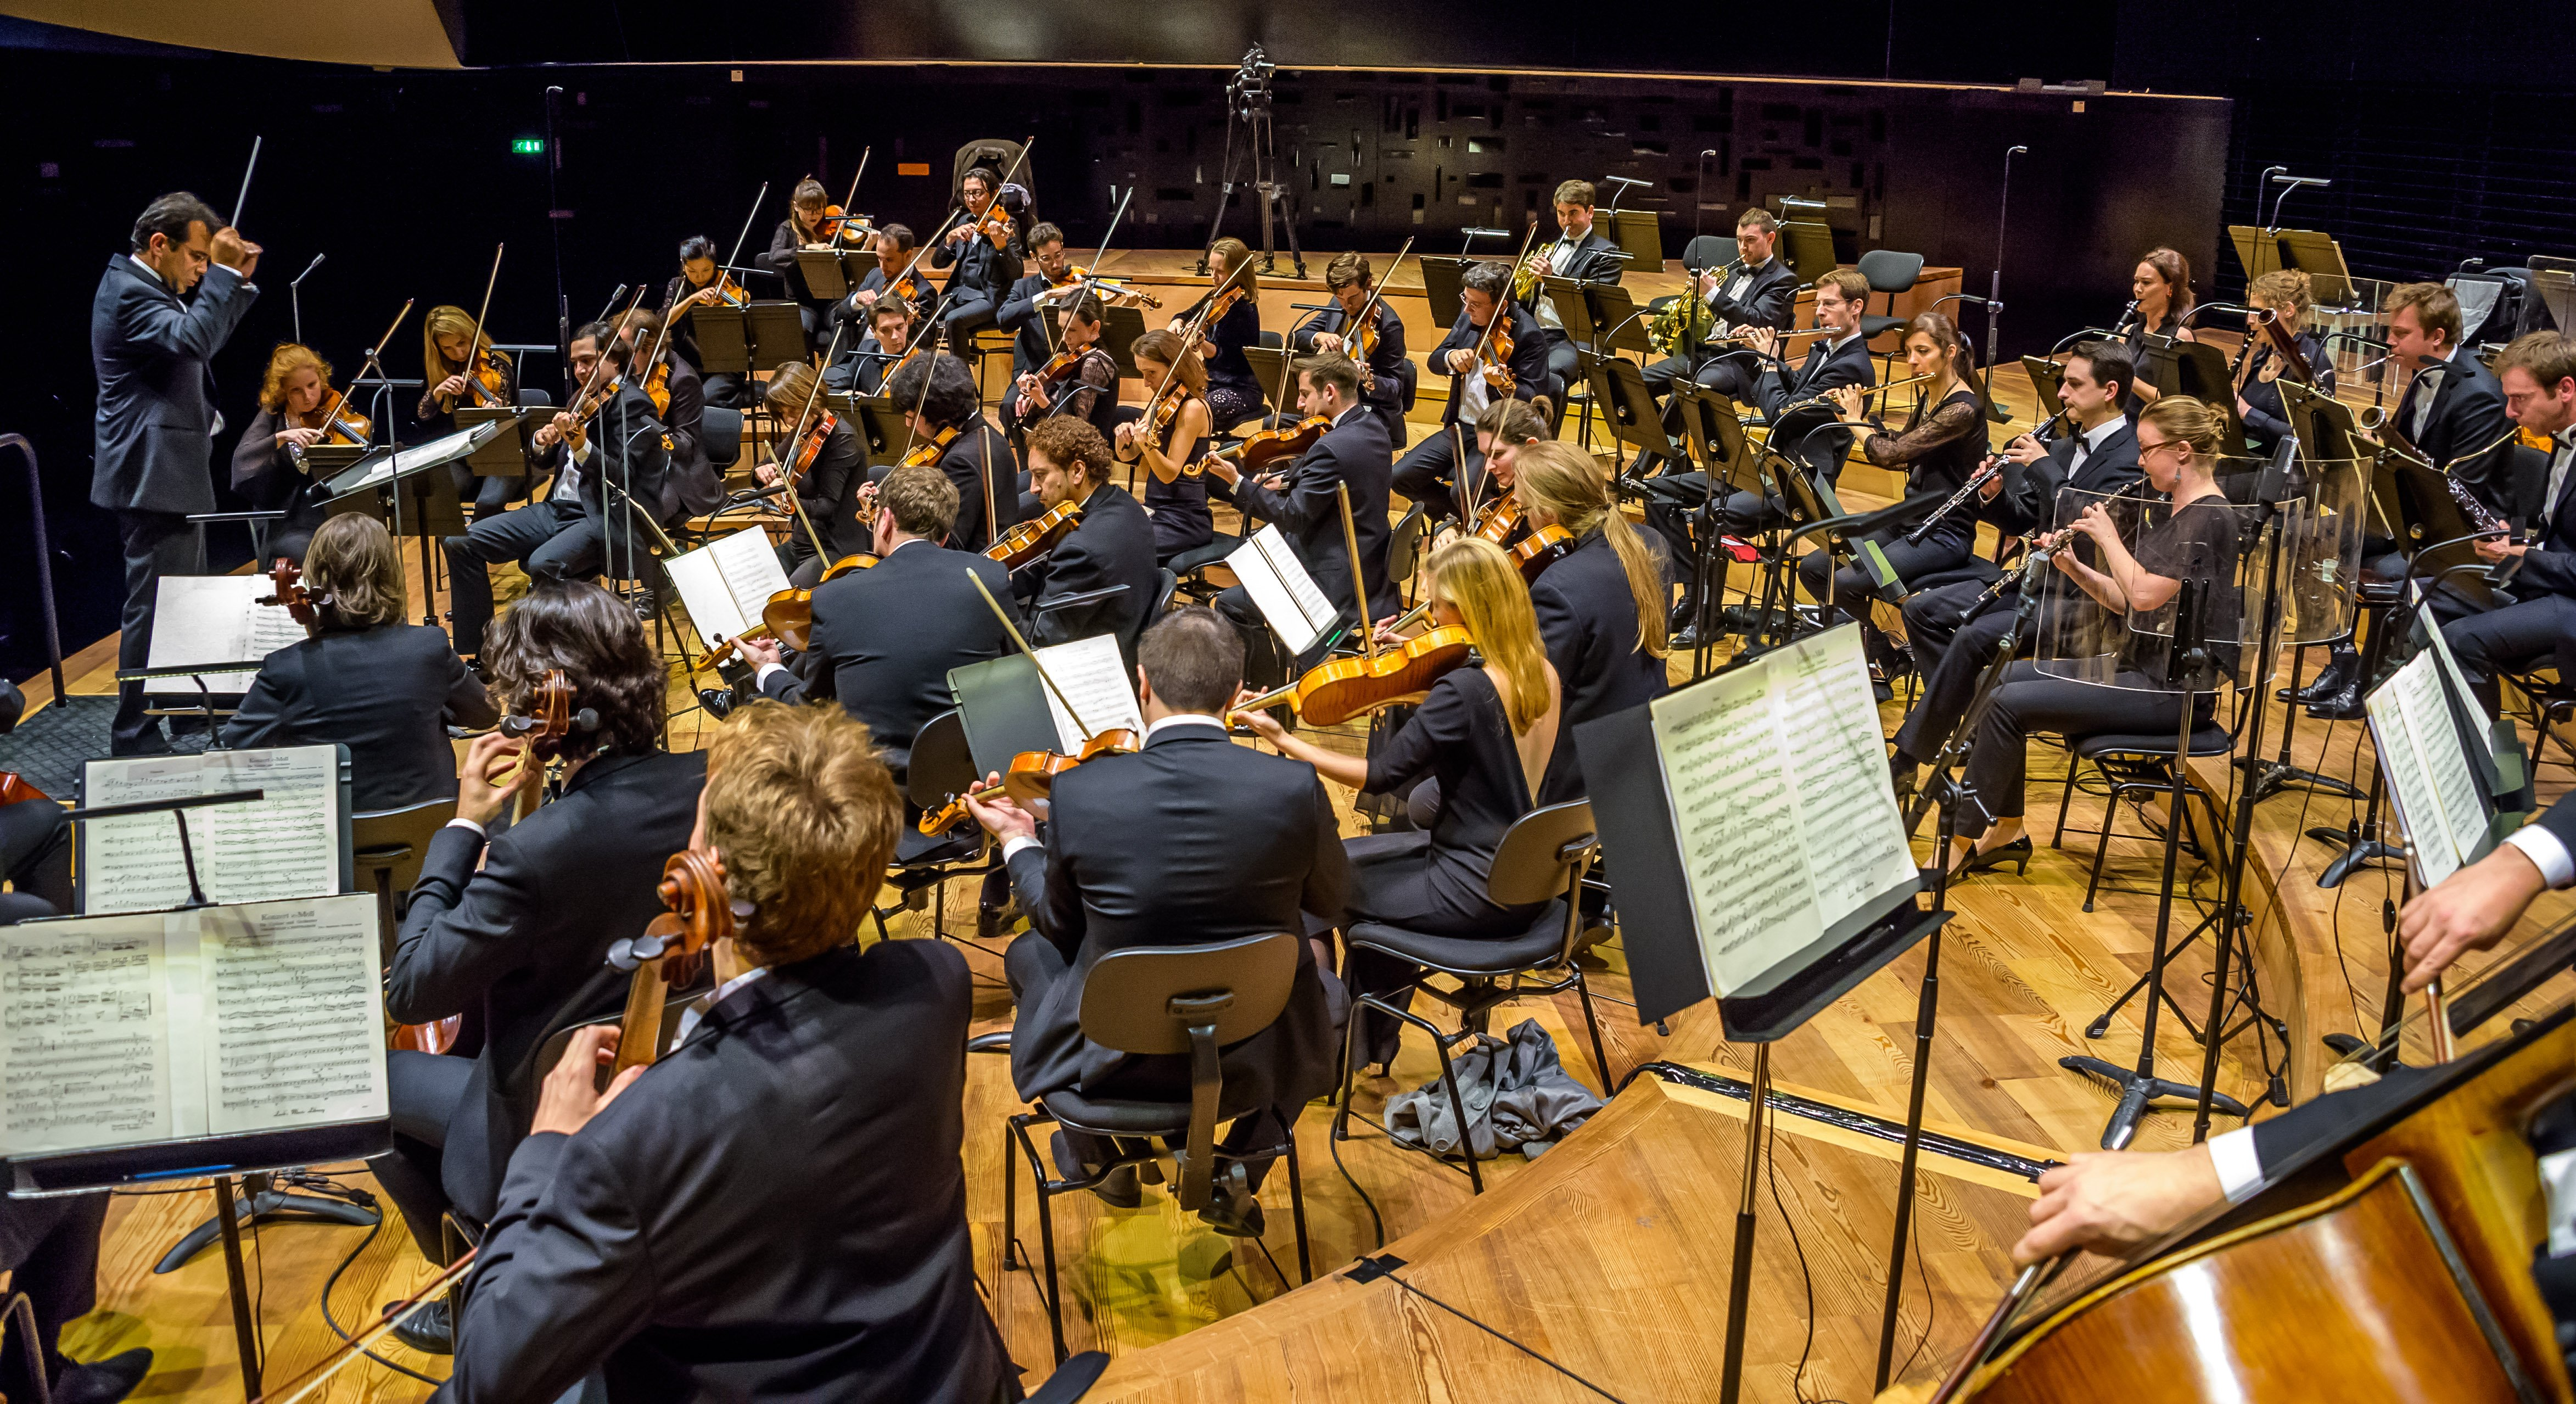 Orchestre de l'Alliance © J-C Guilloux